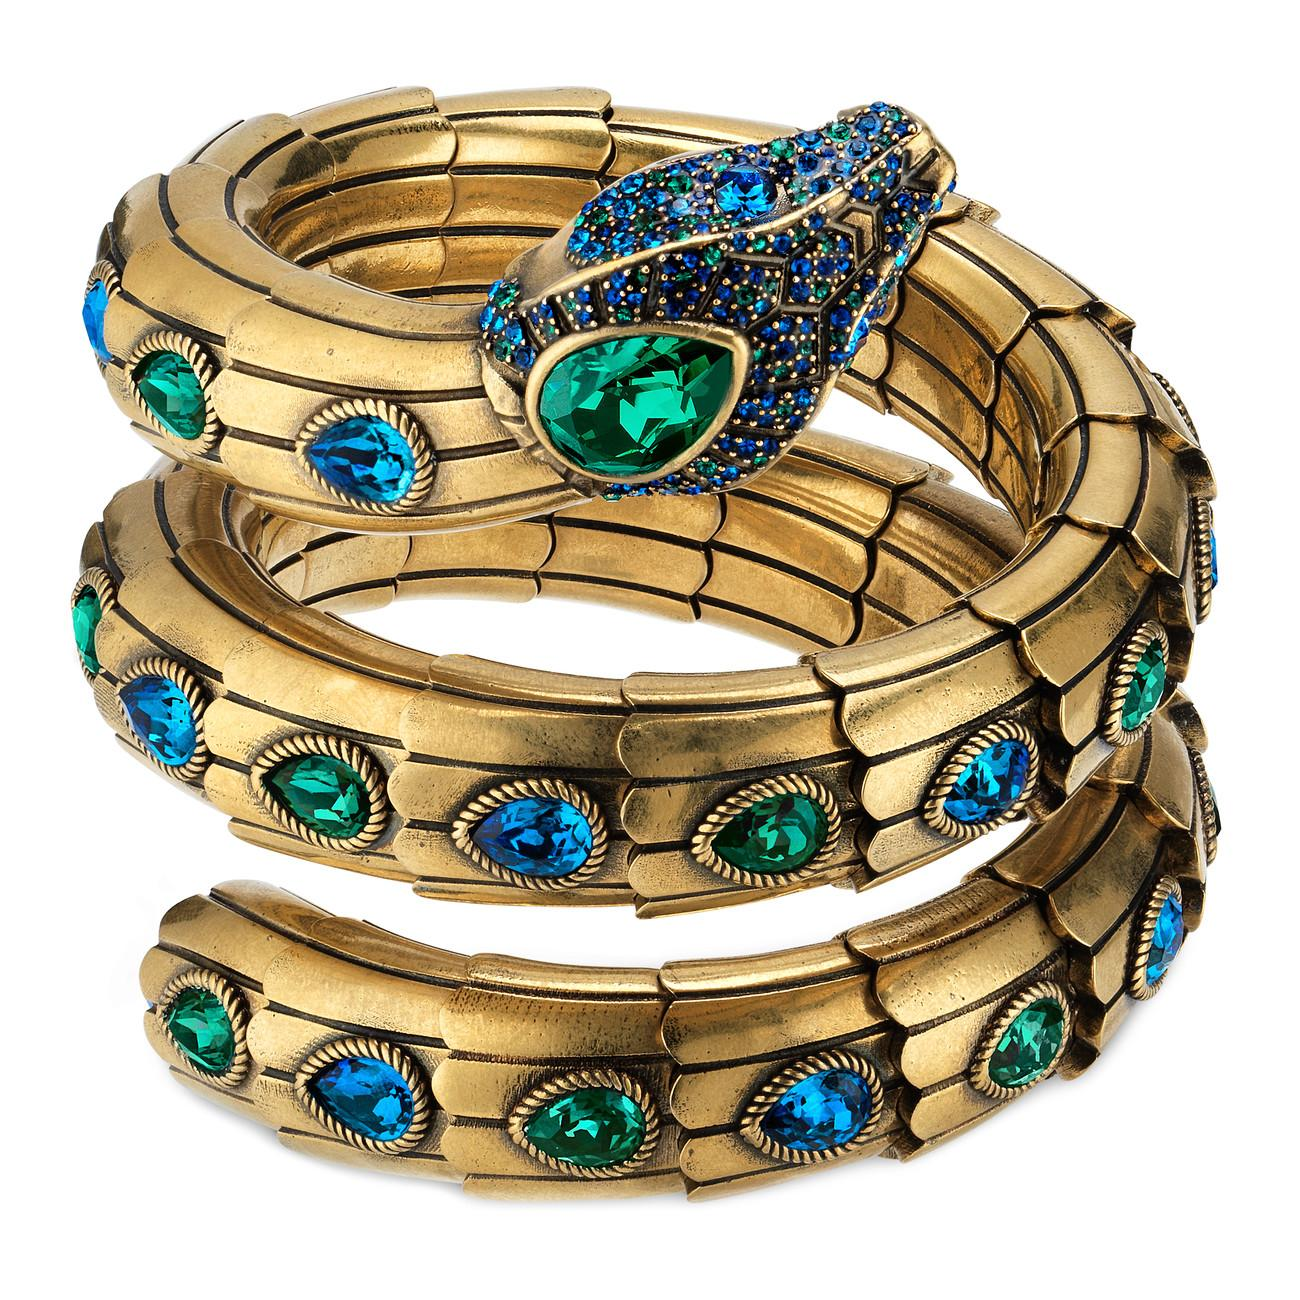 7a0f75bf4 Gucci Triple Wrap Snake Bracelet With Crystals in Blue - Lyst